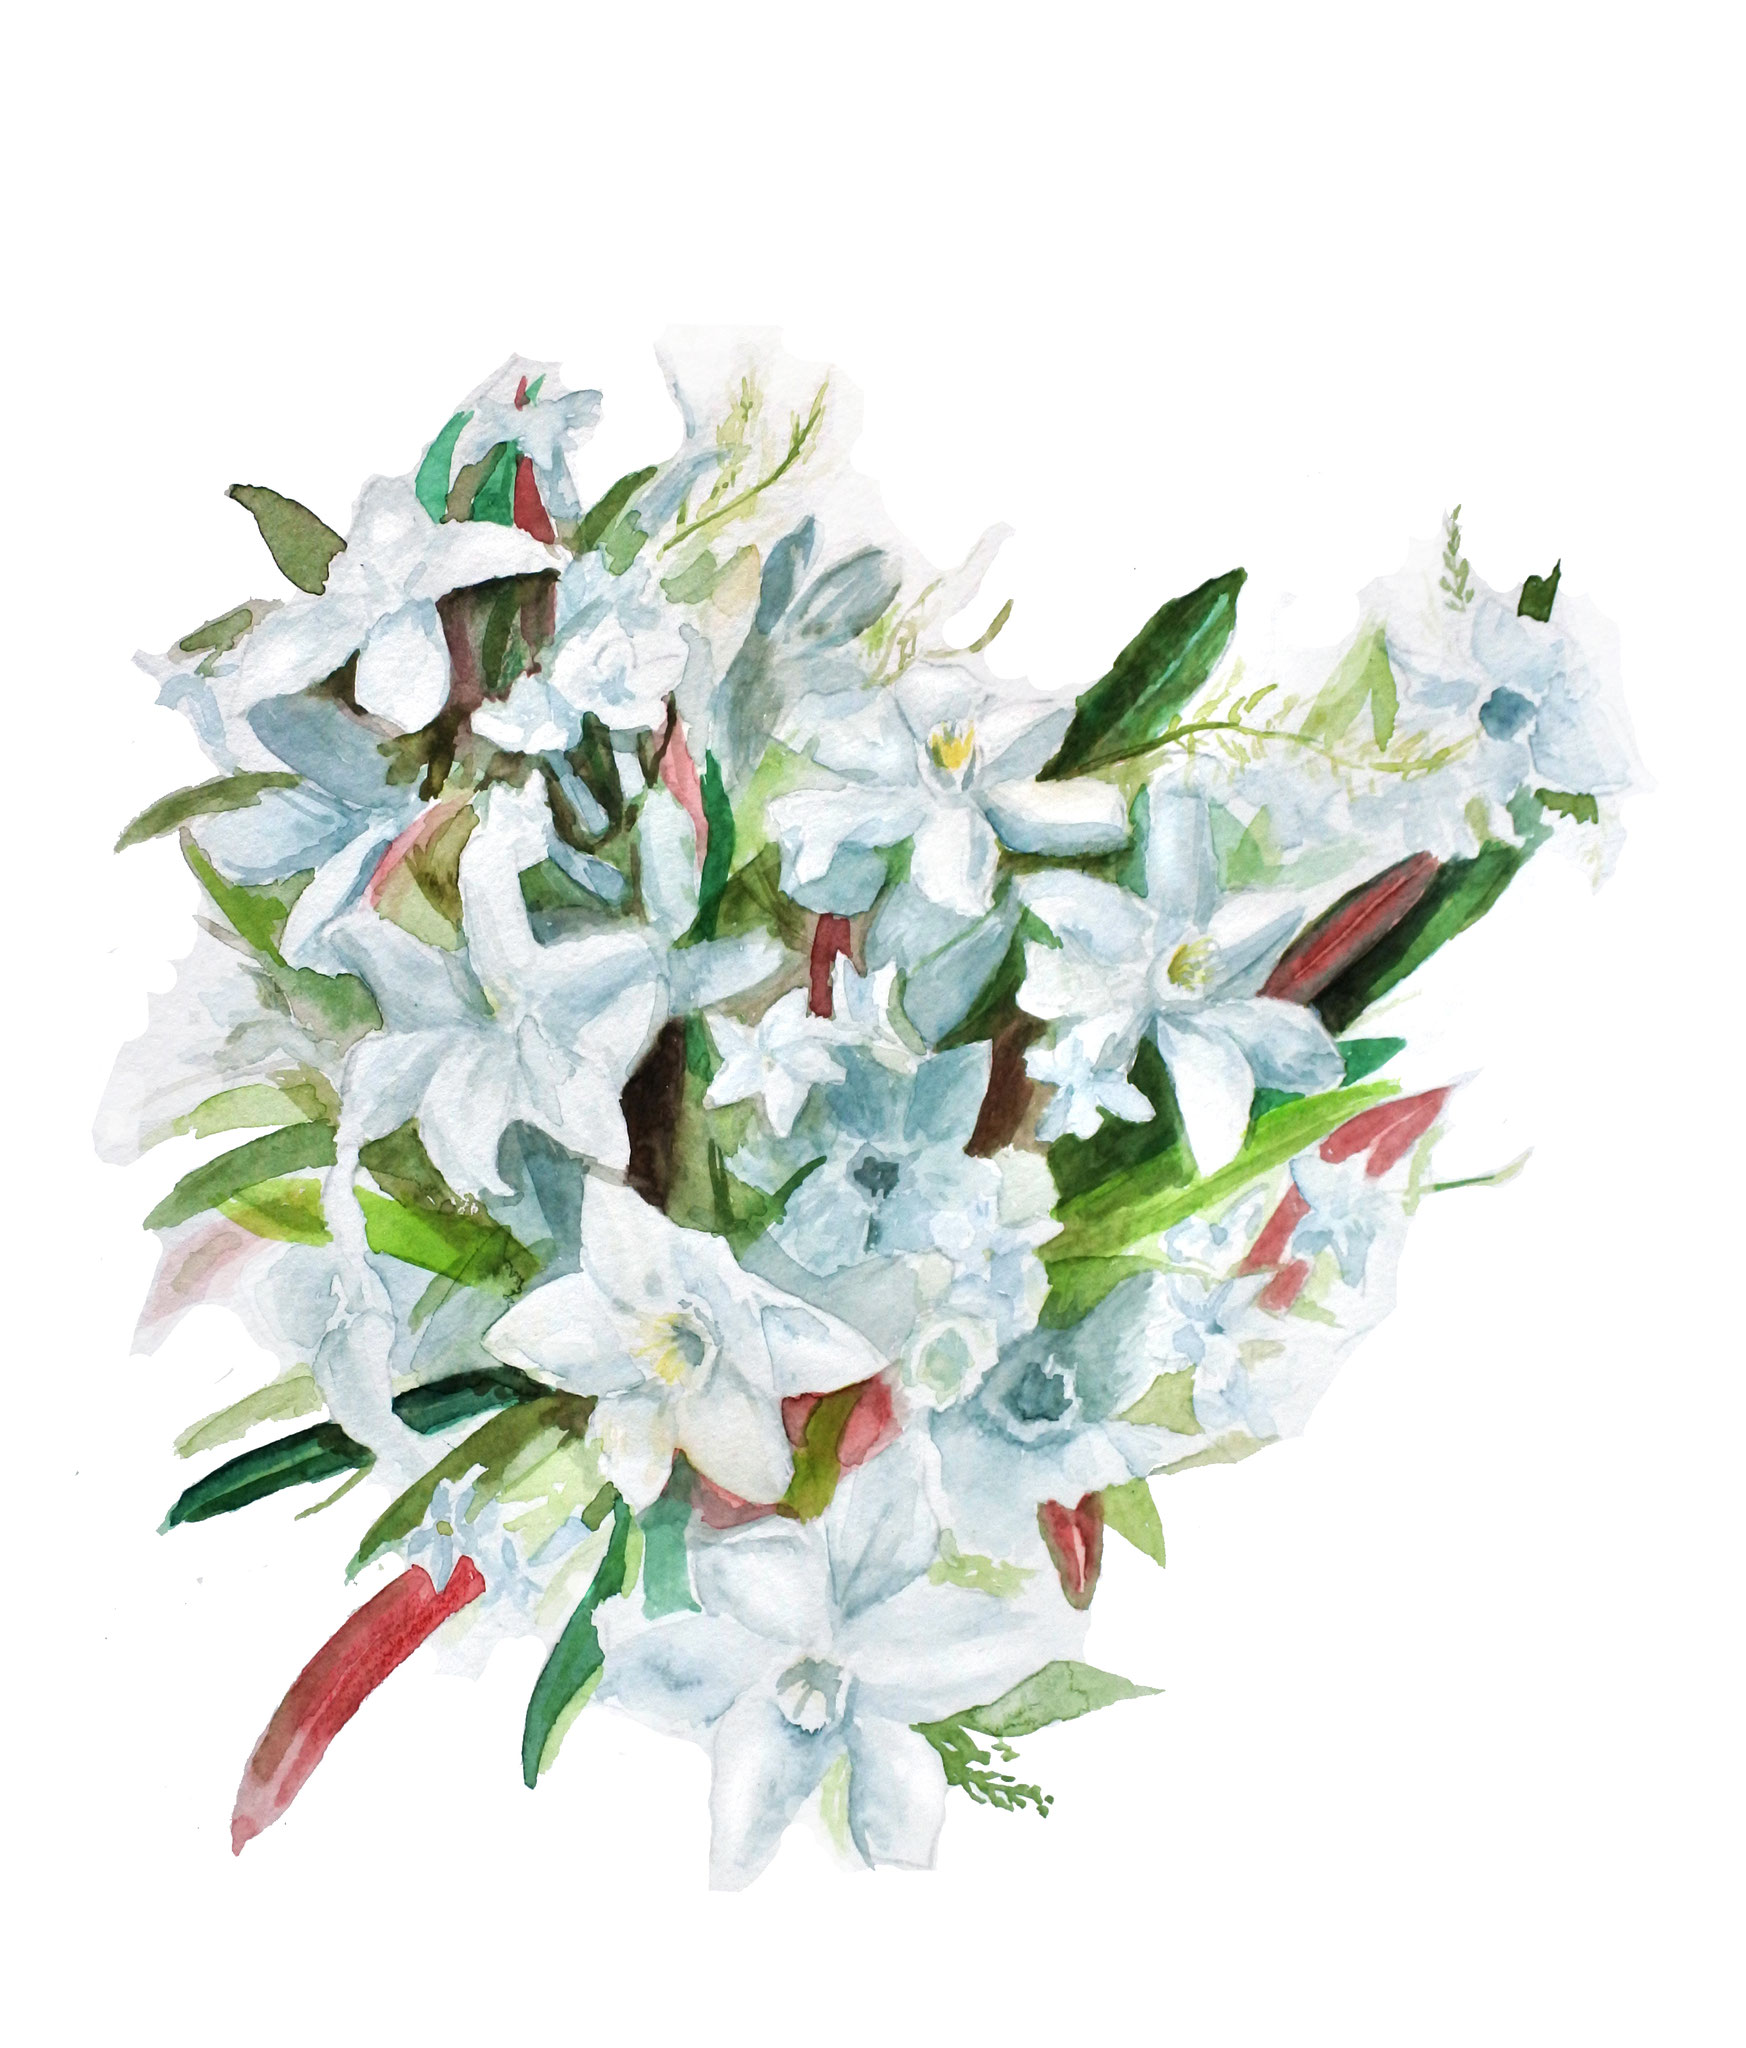 'Bridal bouquet' (2018) Watercolors & photoshop, illustration for jubilee-inventation, painted from a black and white photograph